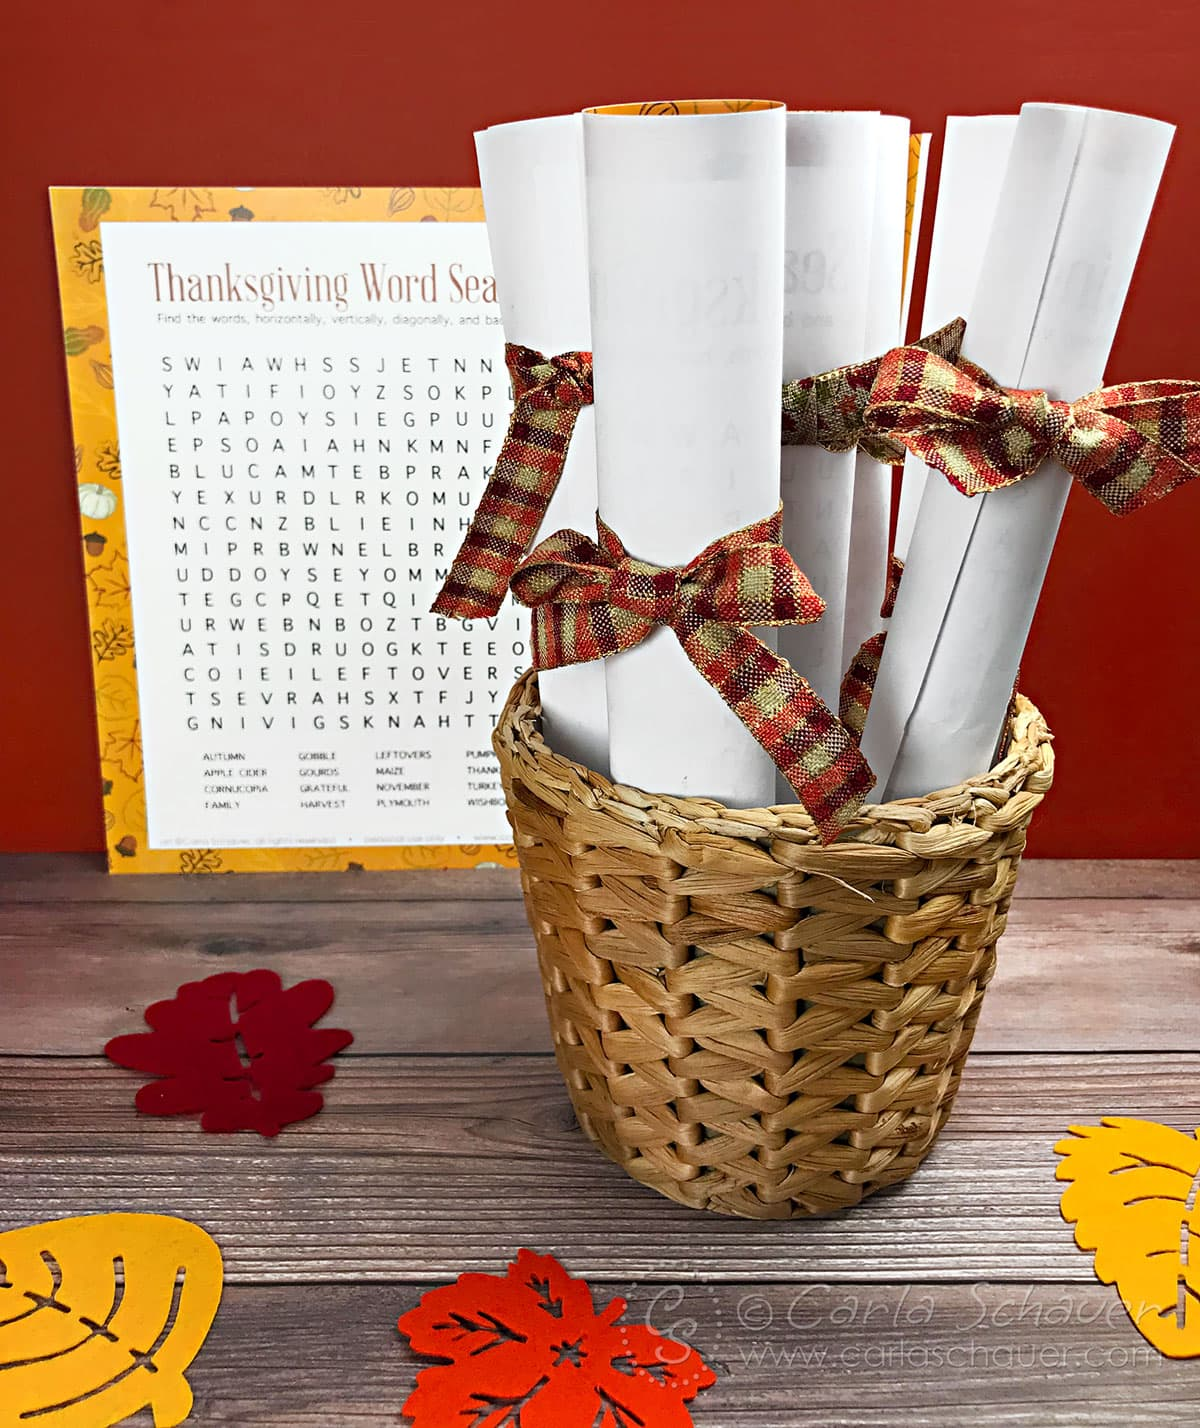 Rolled word search printables tied with fall ribbon, in basket, on wood table.